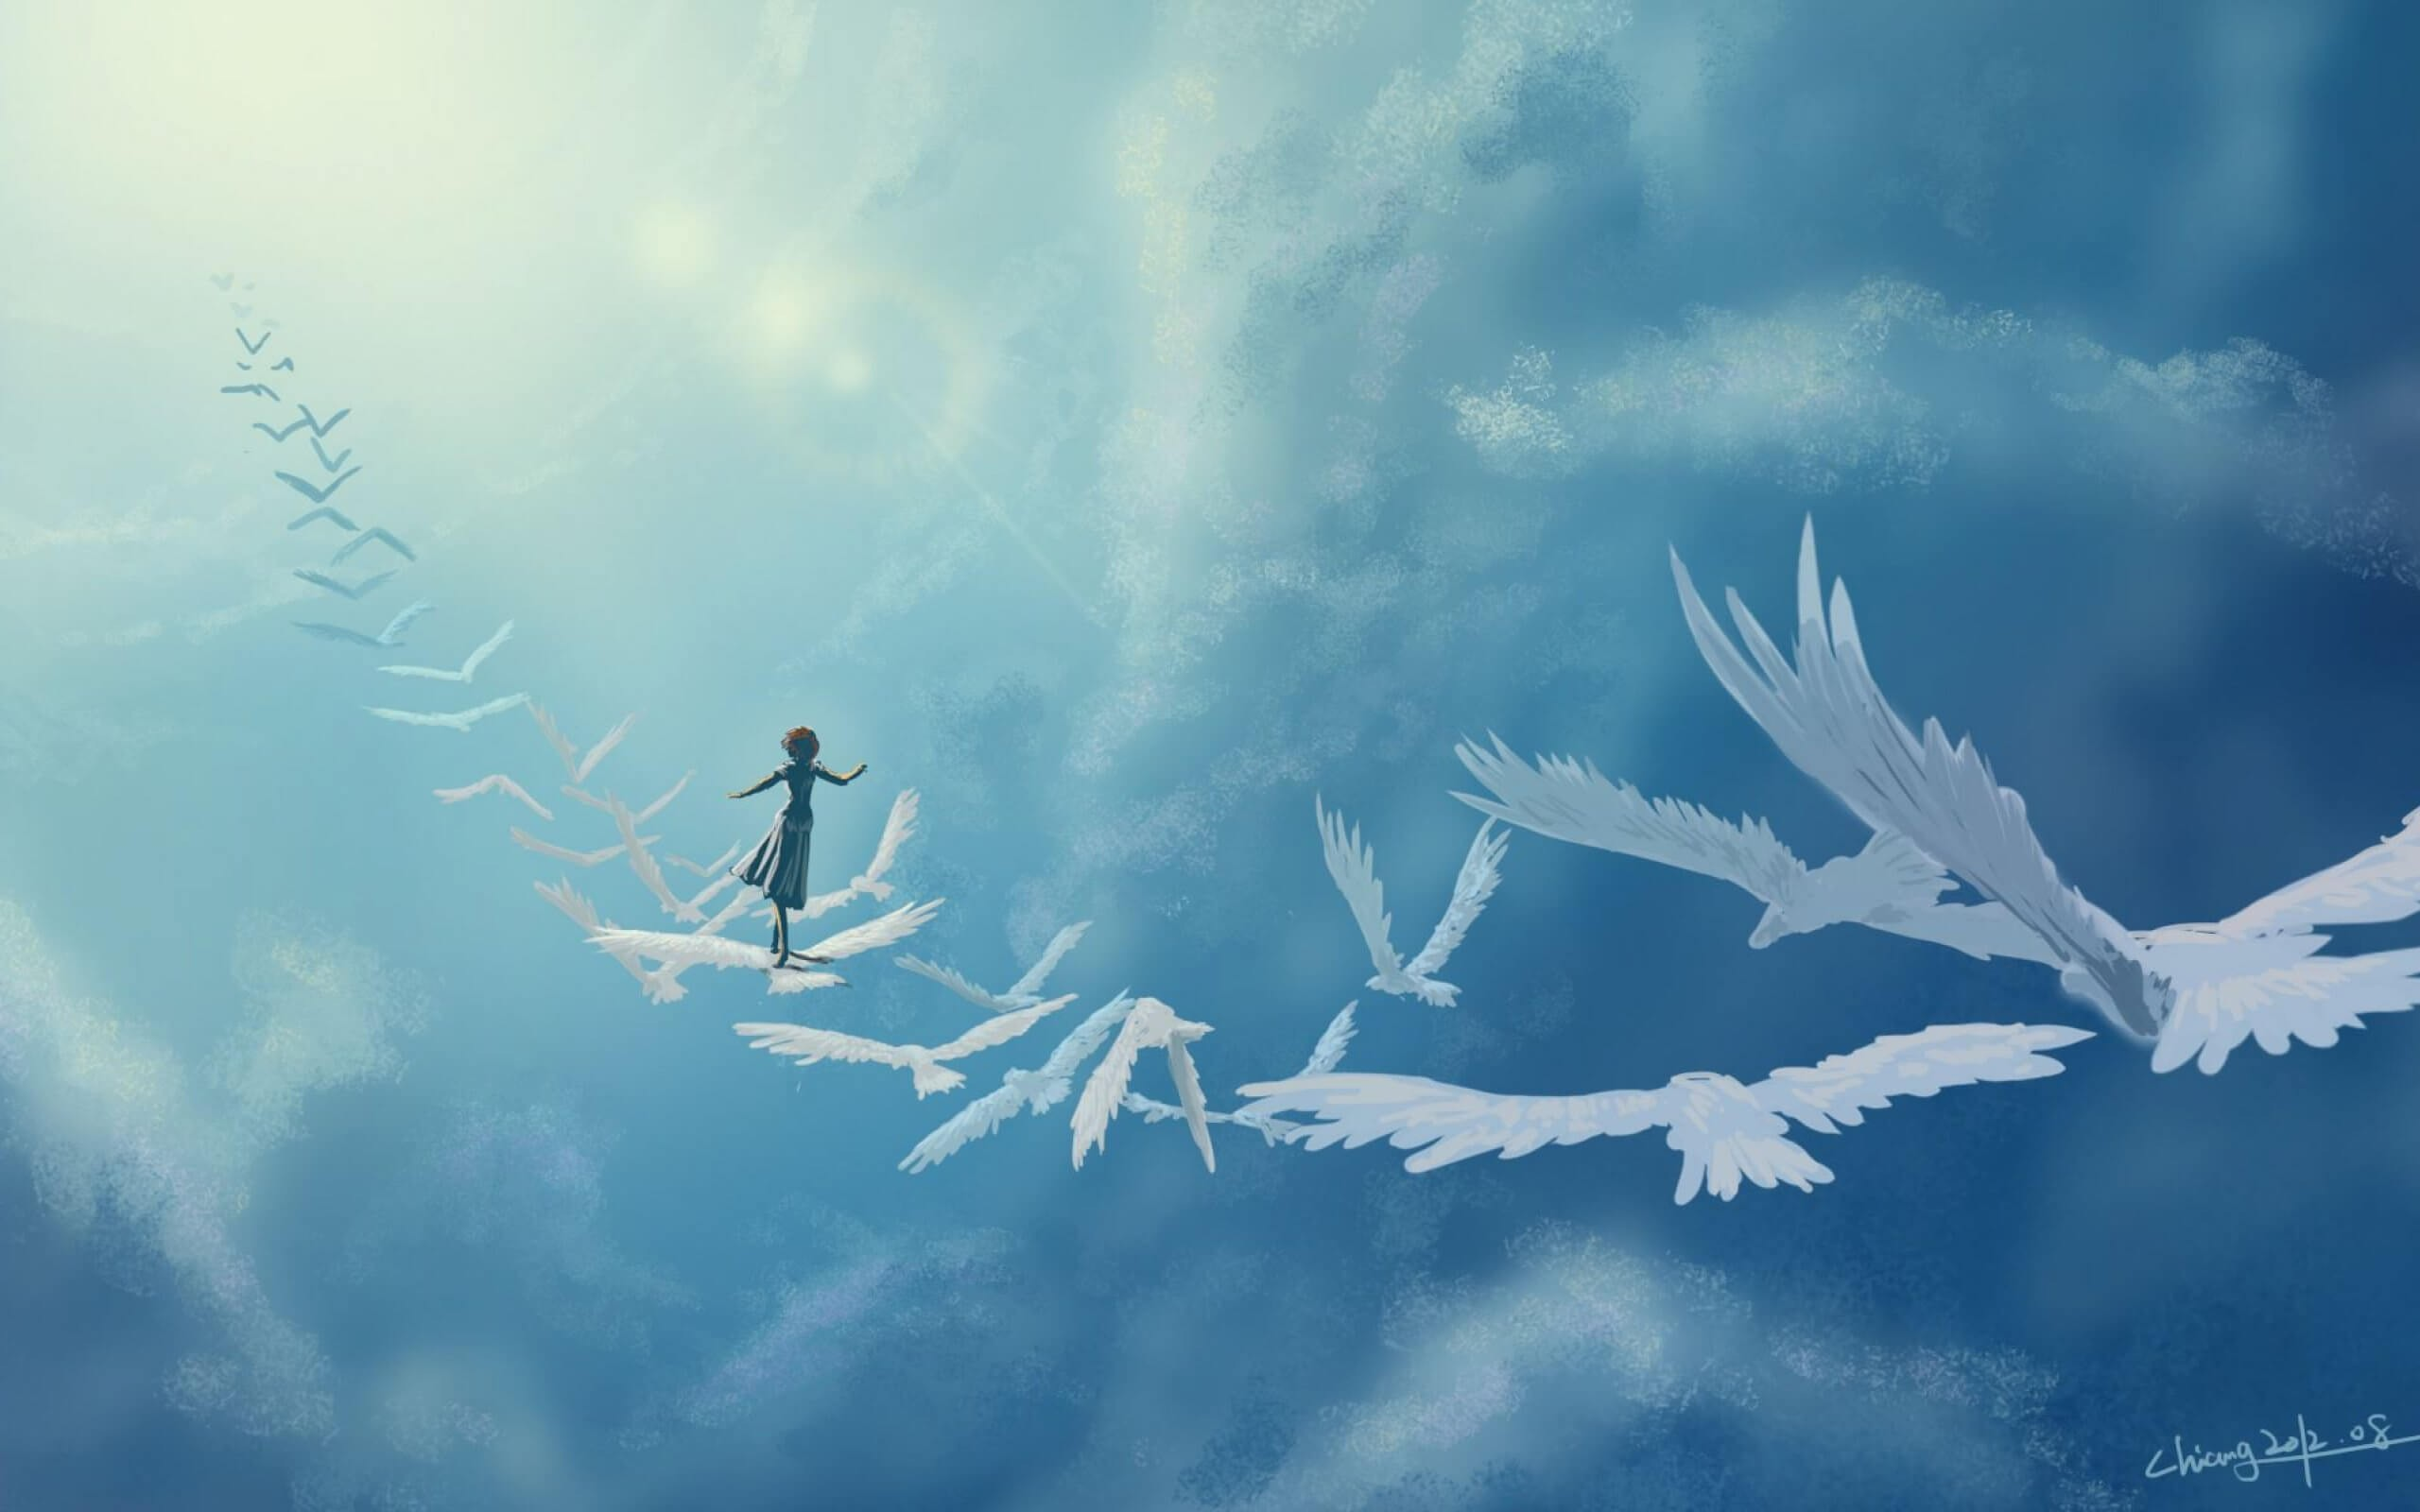 A Girl Flying On The Wings Of Birds Artistic Work Paintings 2560x1600 QHD Wallpaper 9